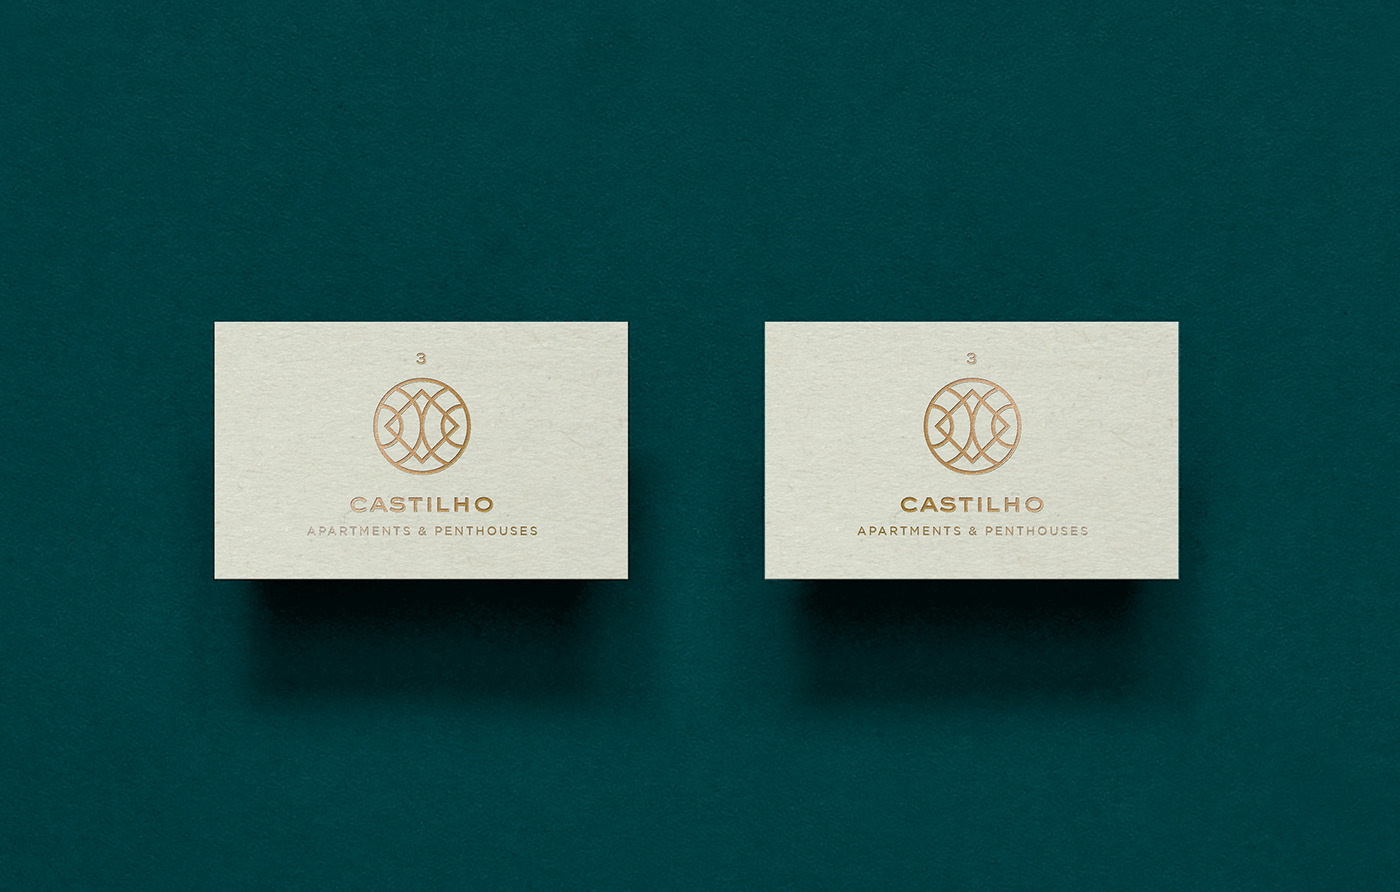 Castilho business cards